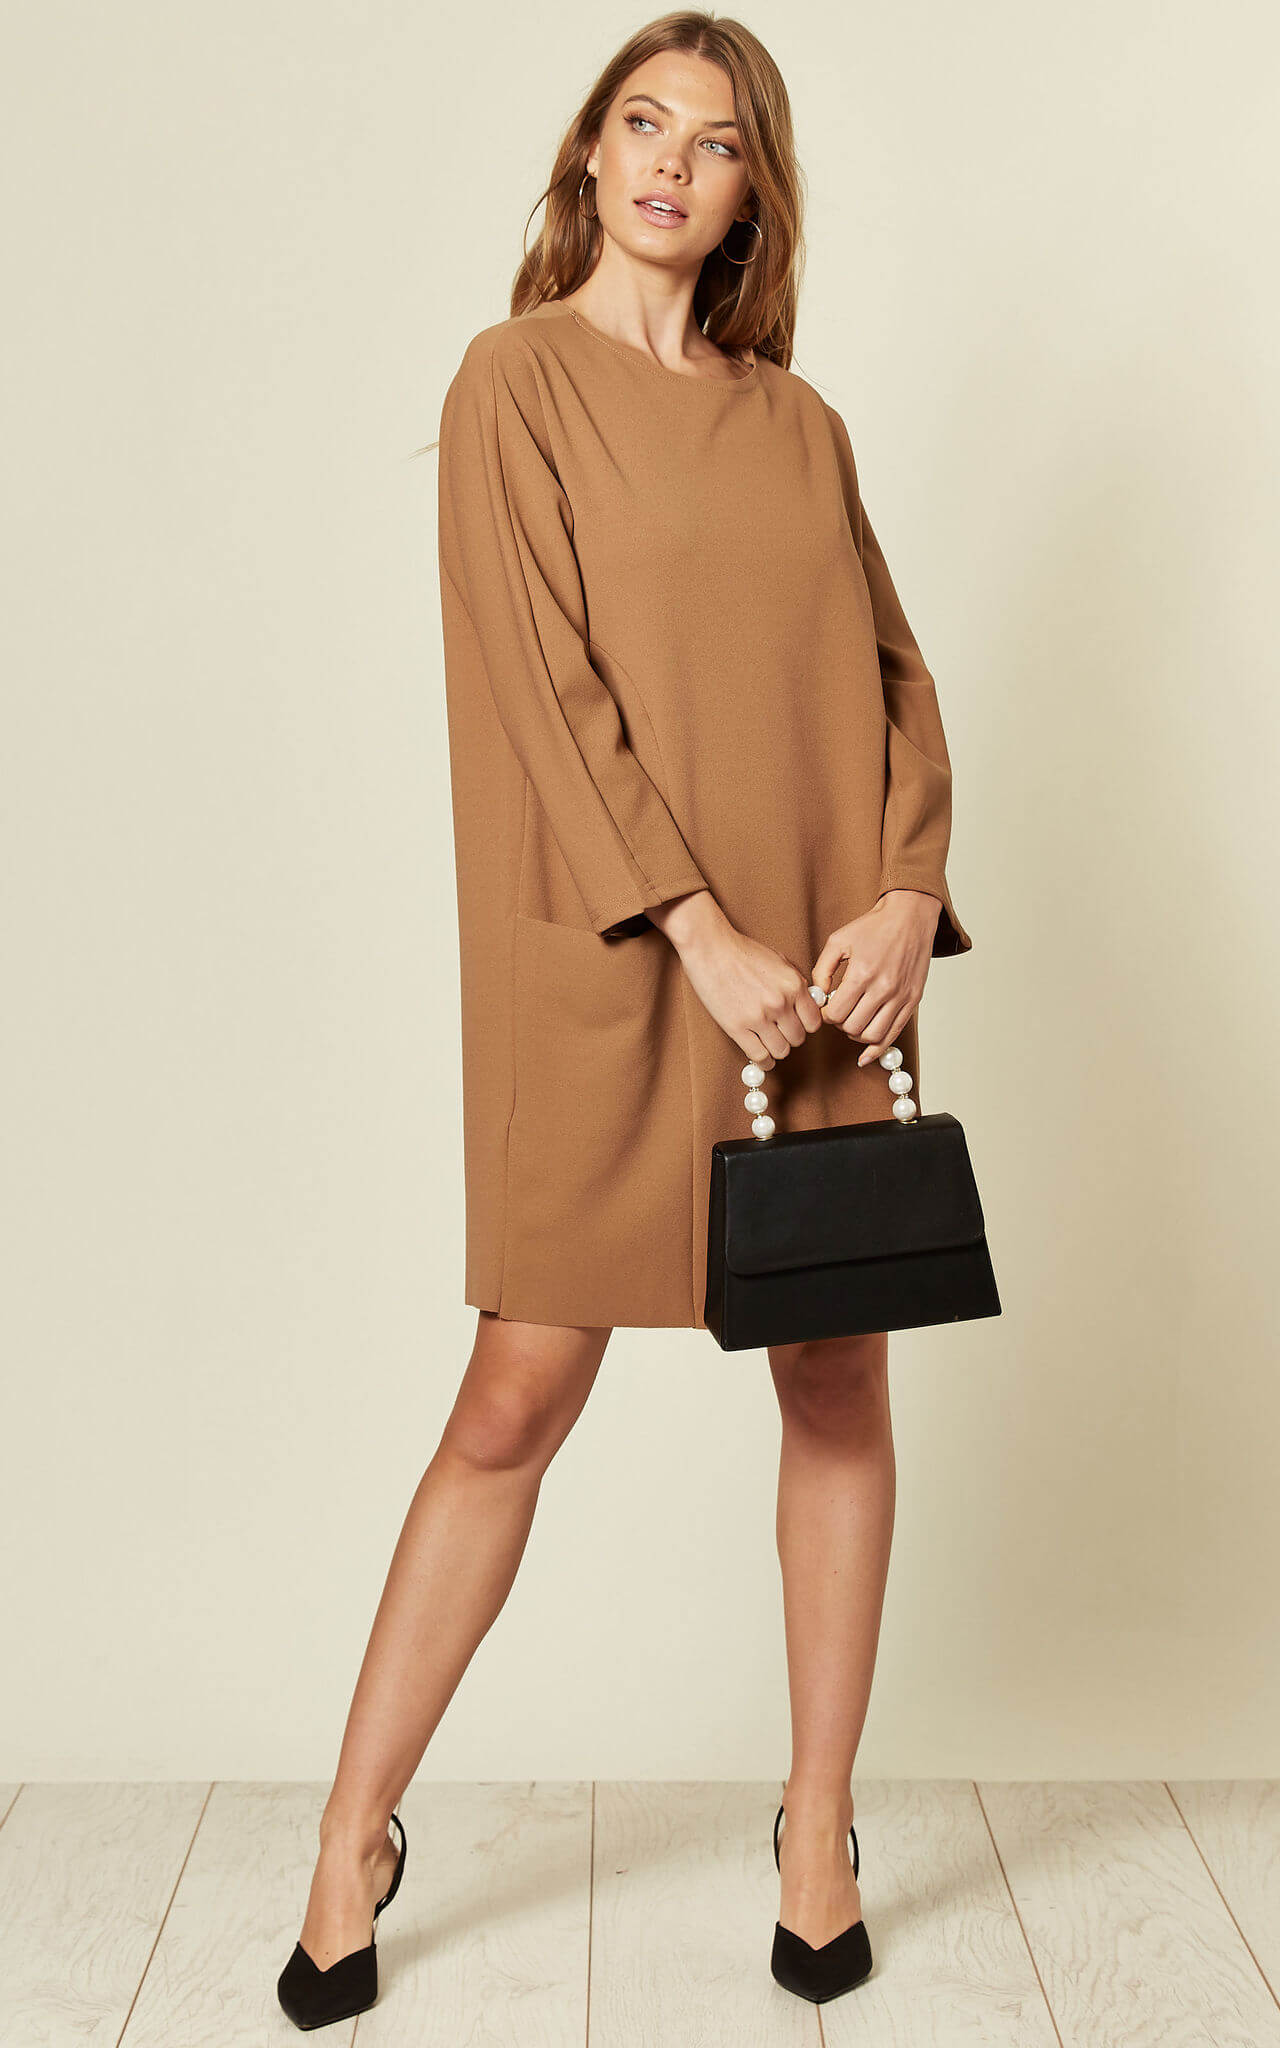 Model wears a long sleeve tunic dress in camel with pockets and a black handbag